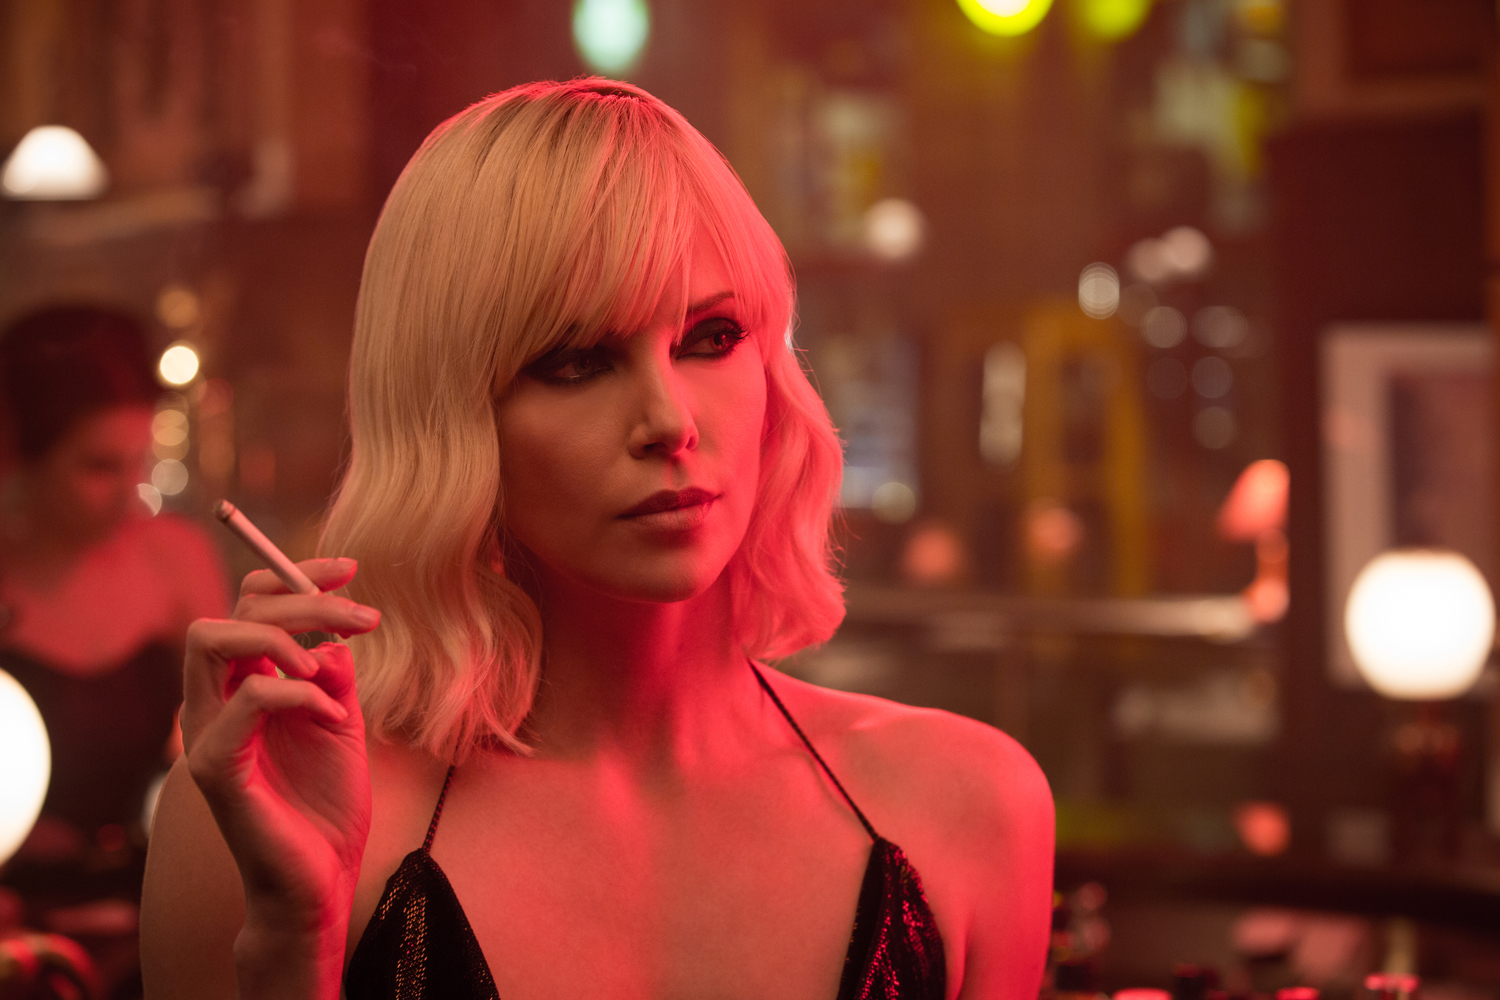 Atomic Blonde is thin on plot but heavy on incredible action